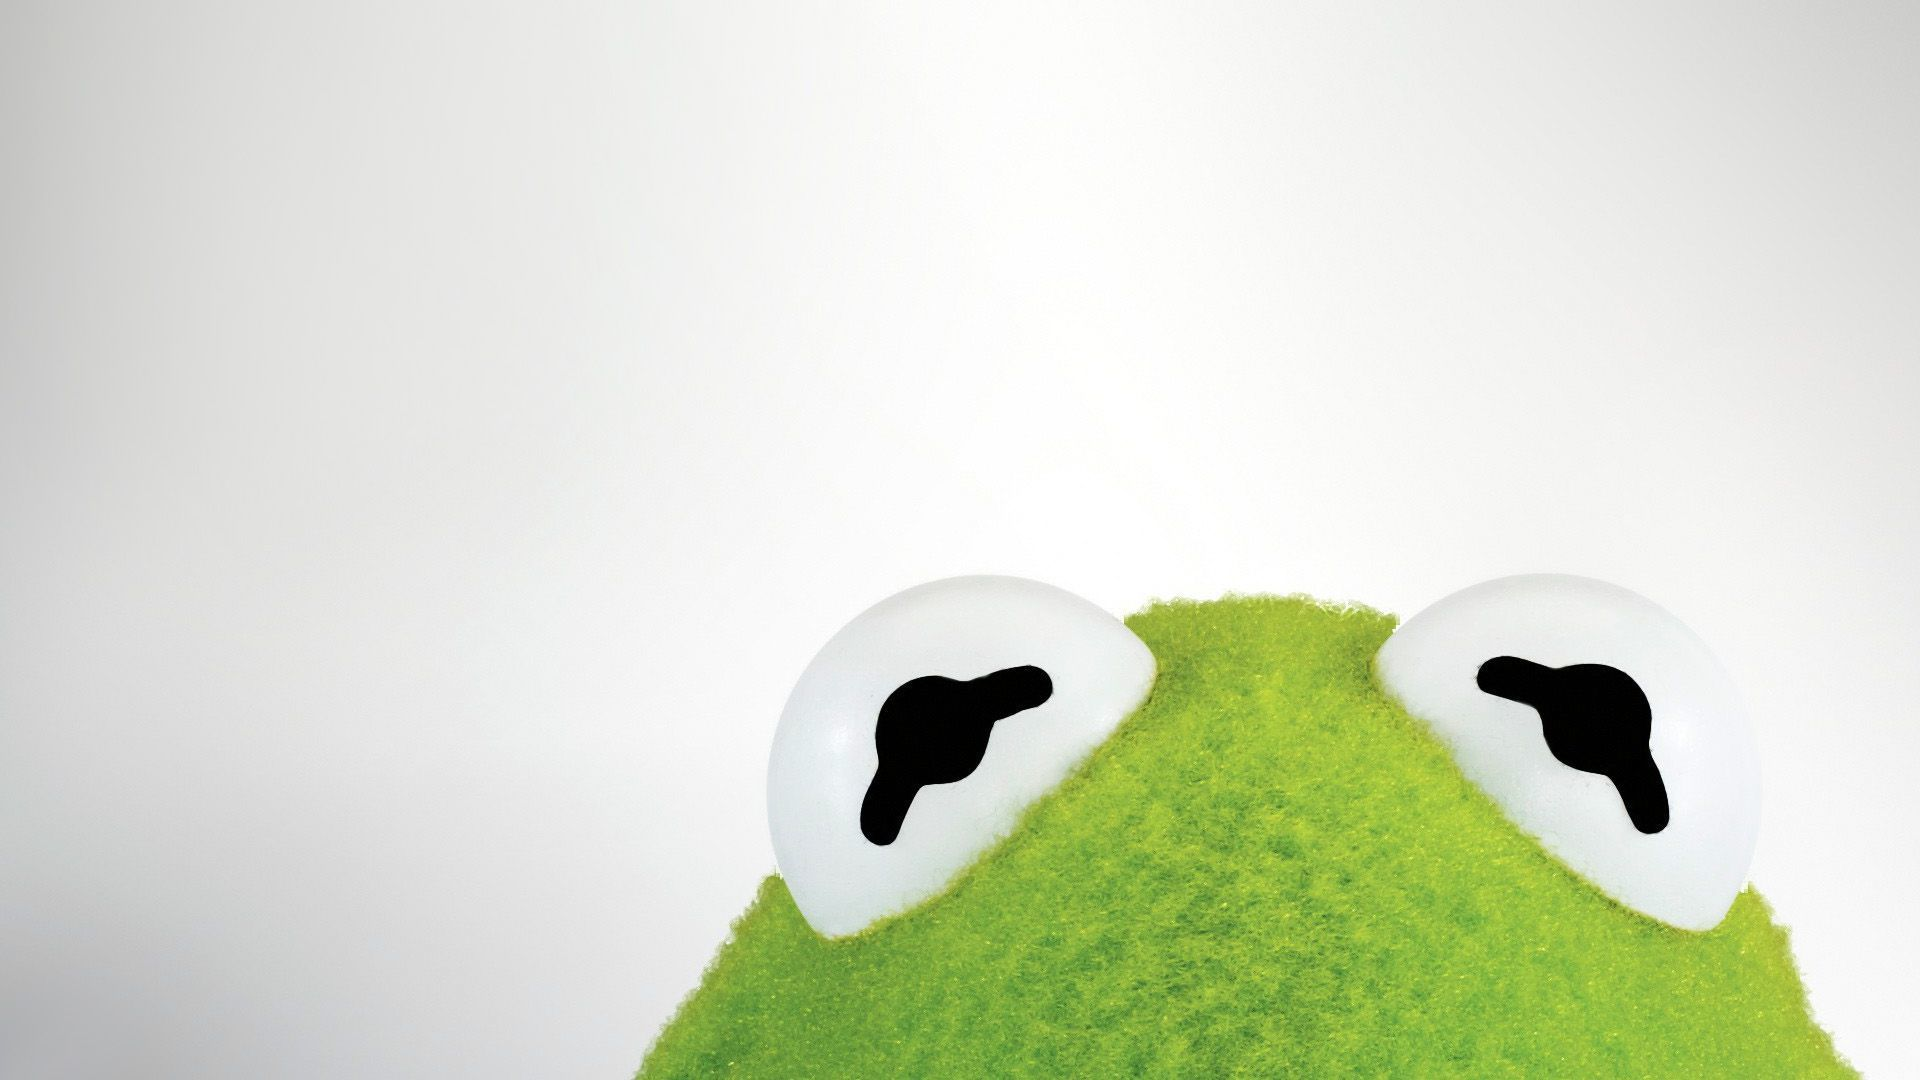 1920x1080 Kermit The Frog Wallpaper (26+ images) on Genchi.info